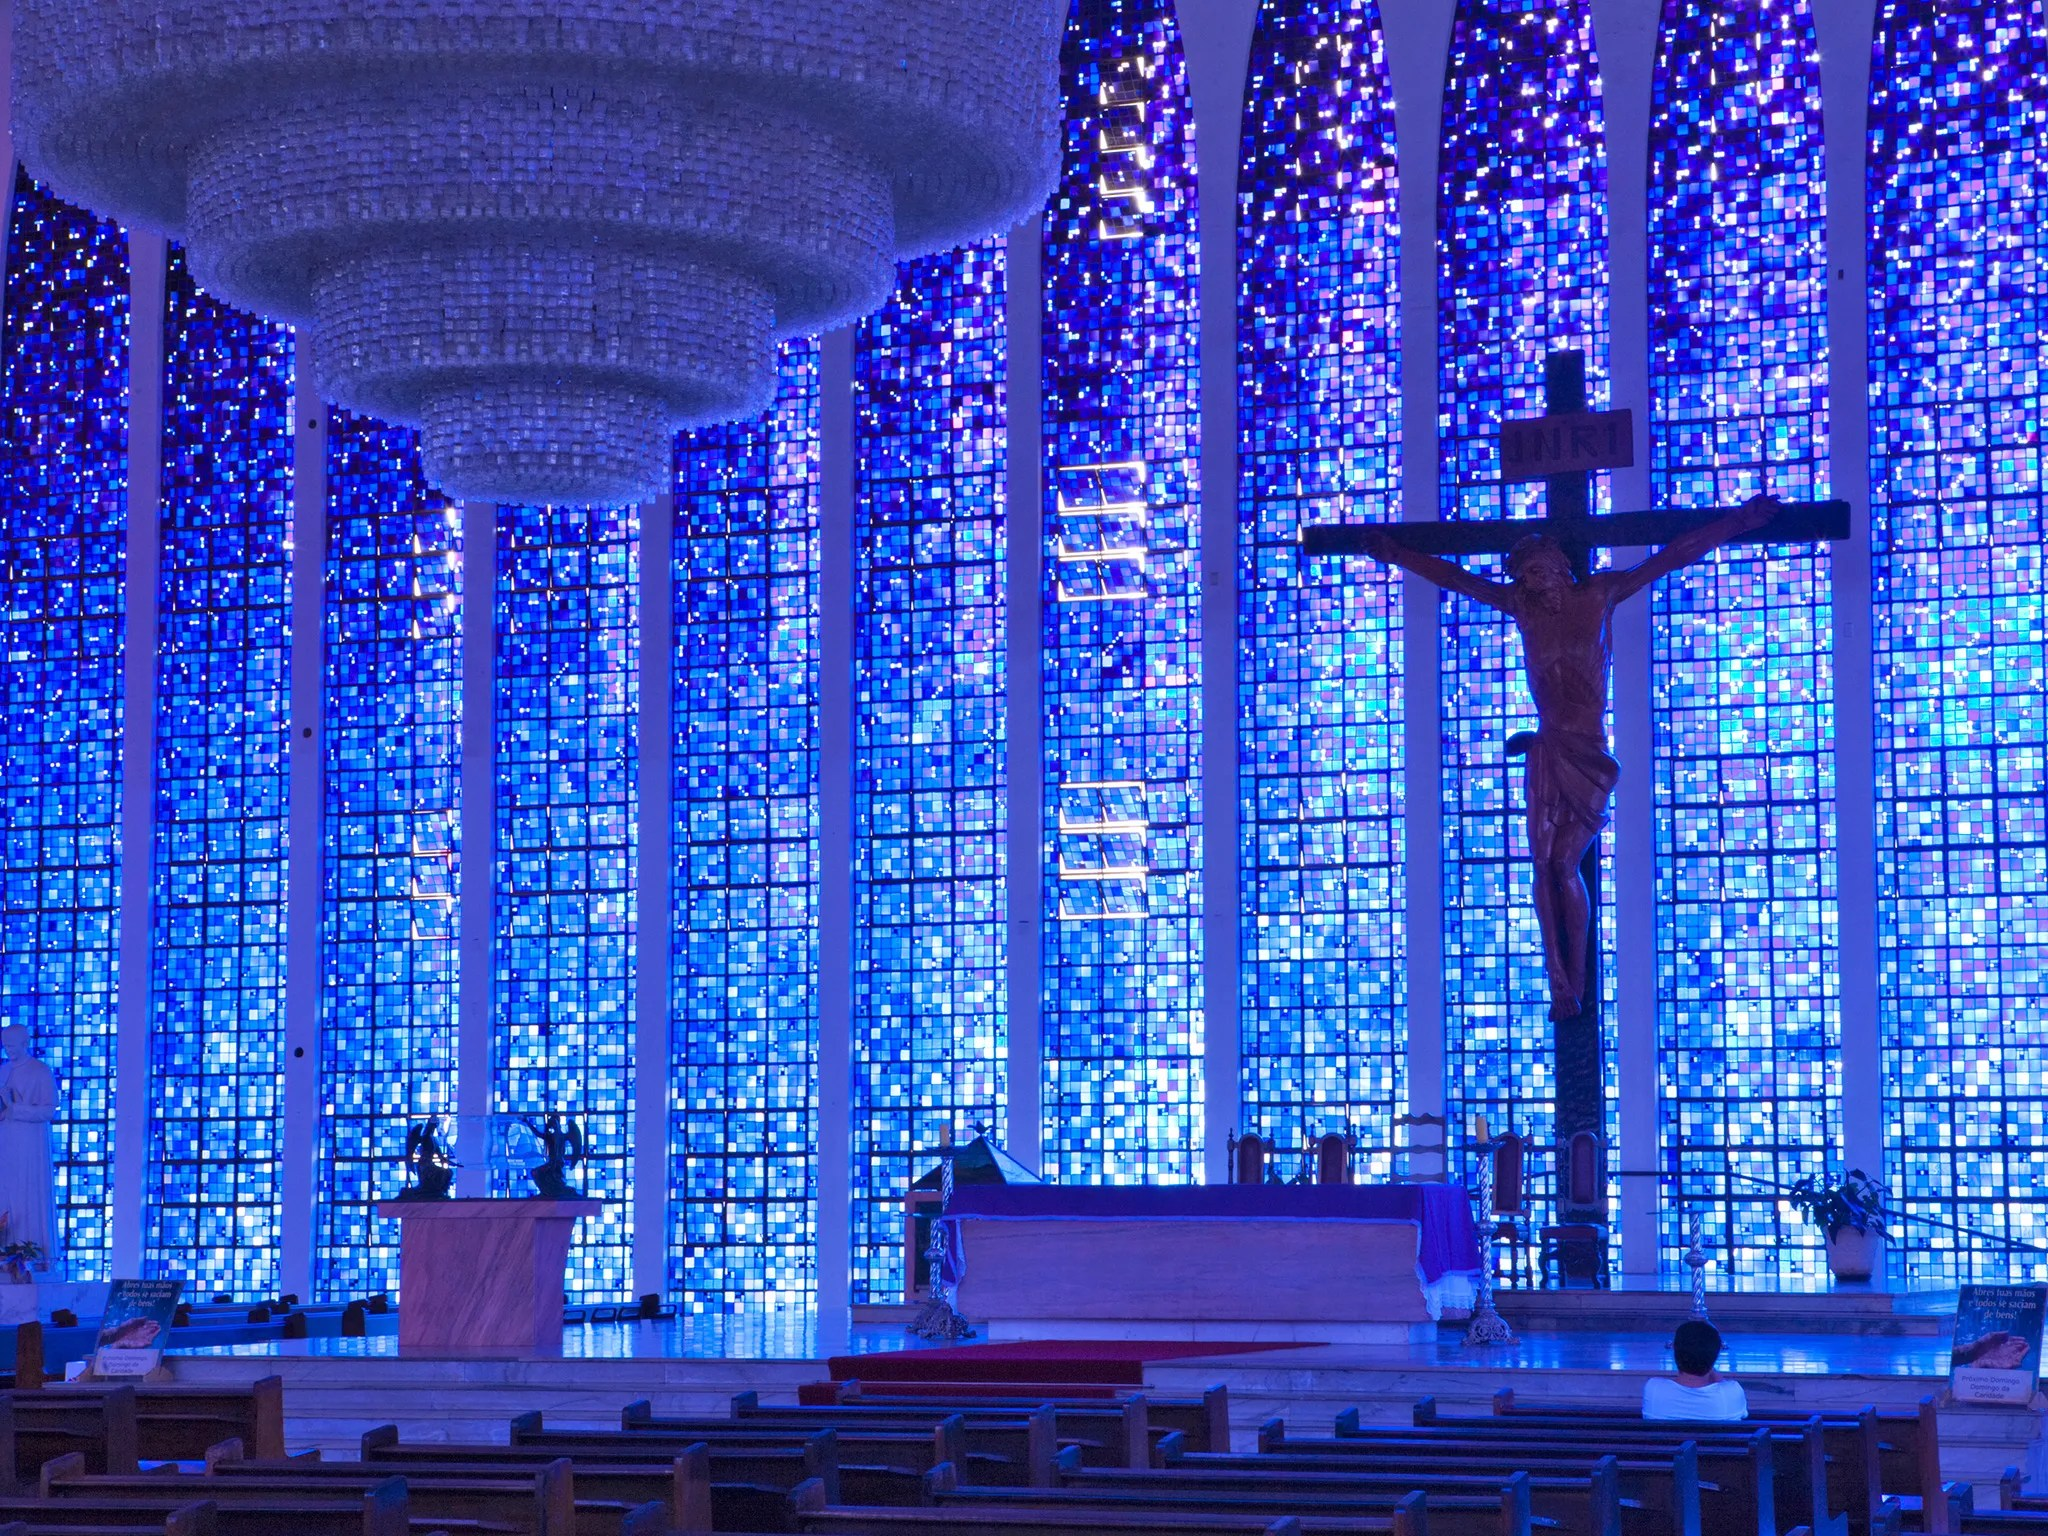 the most beautiful stained glass in the